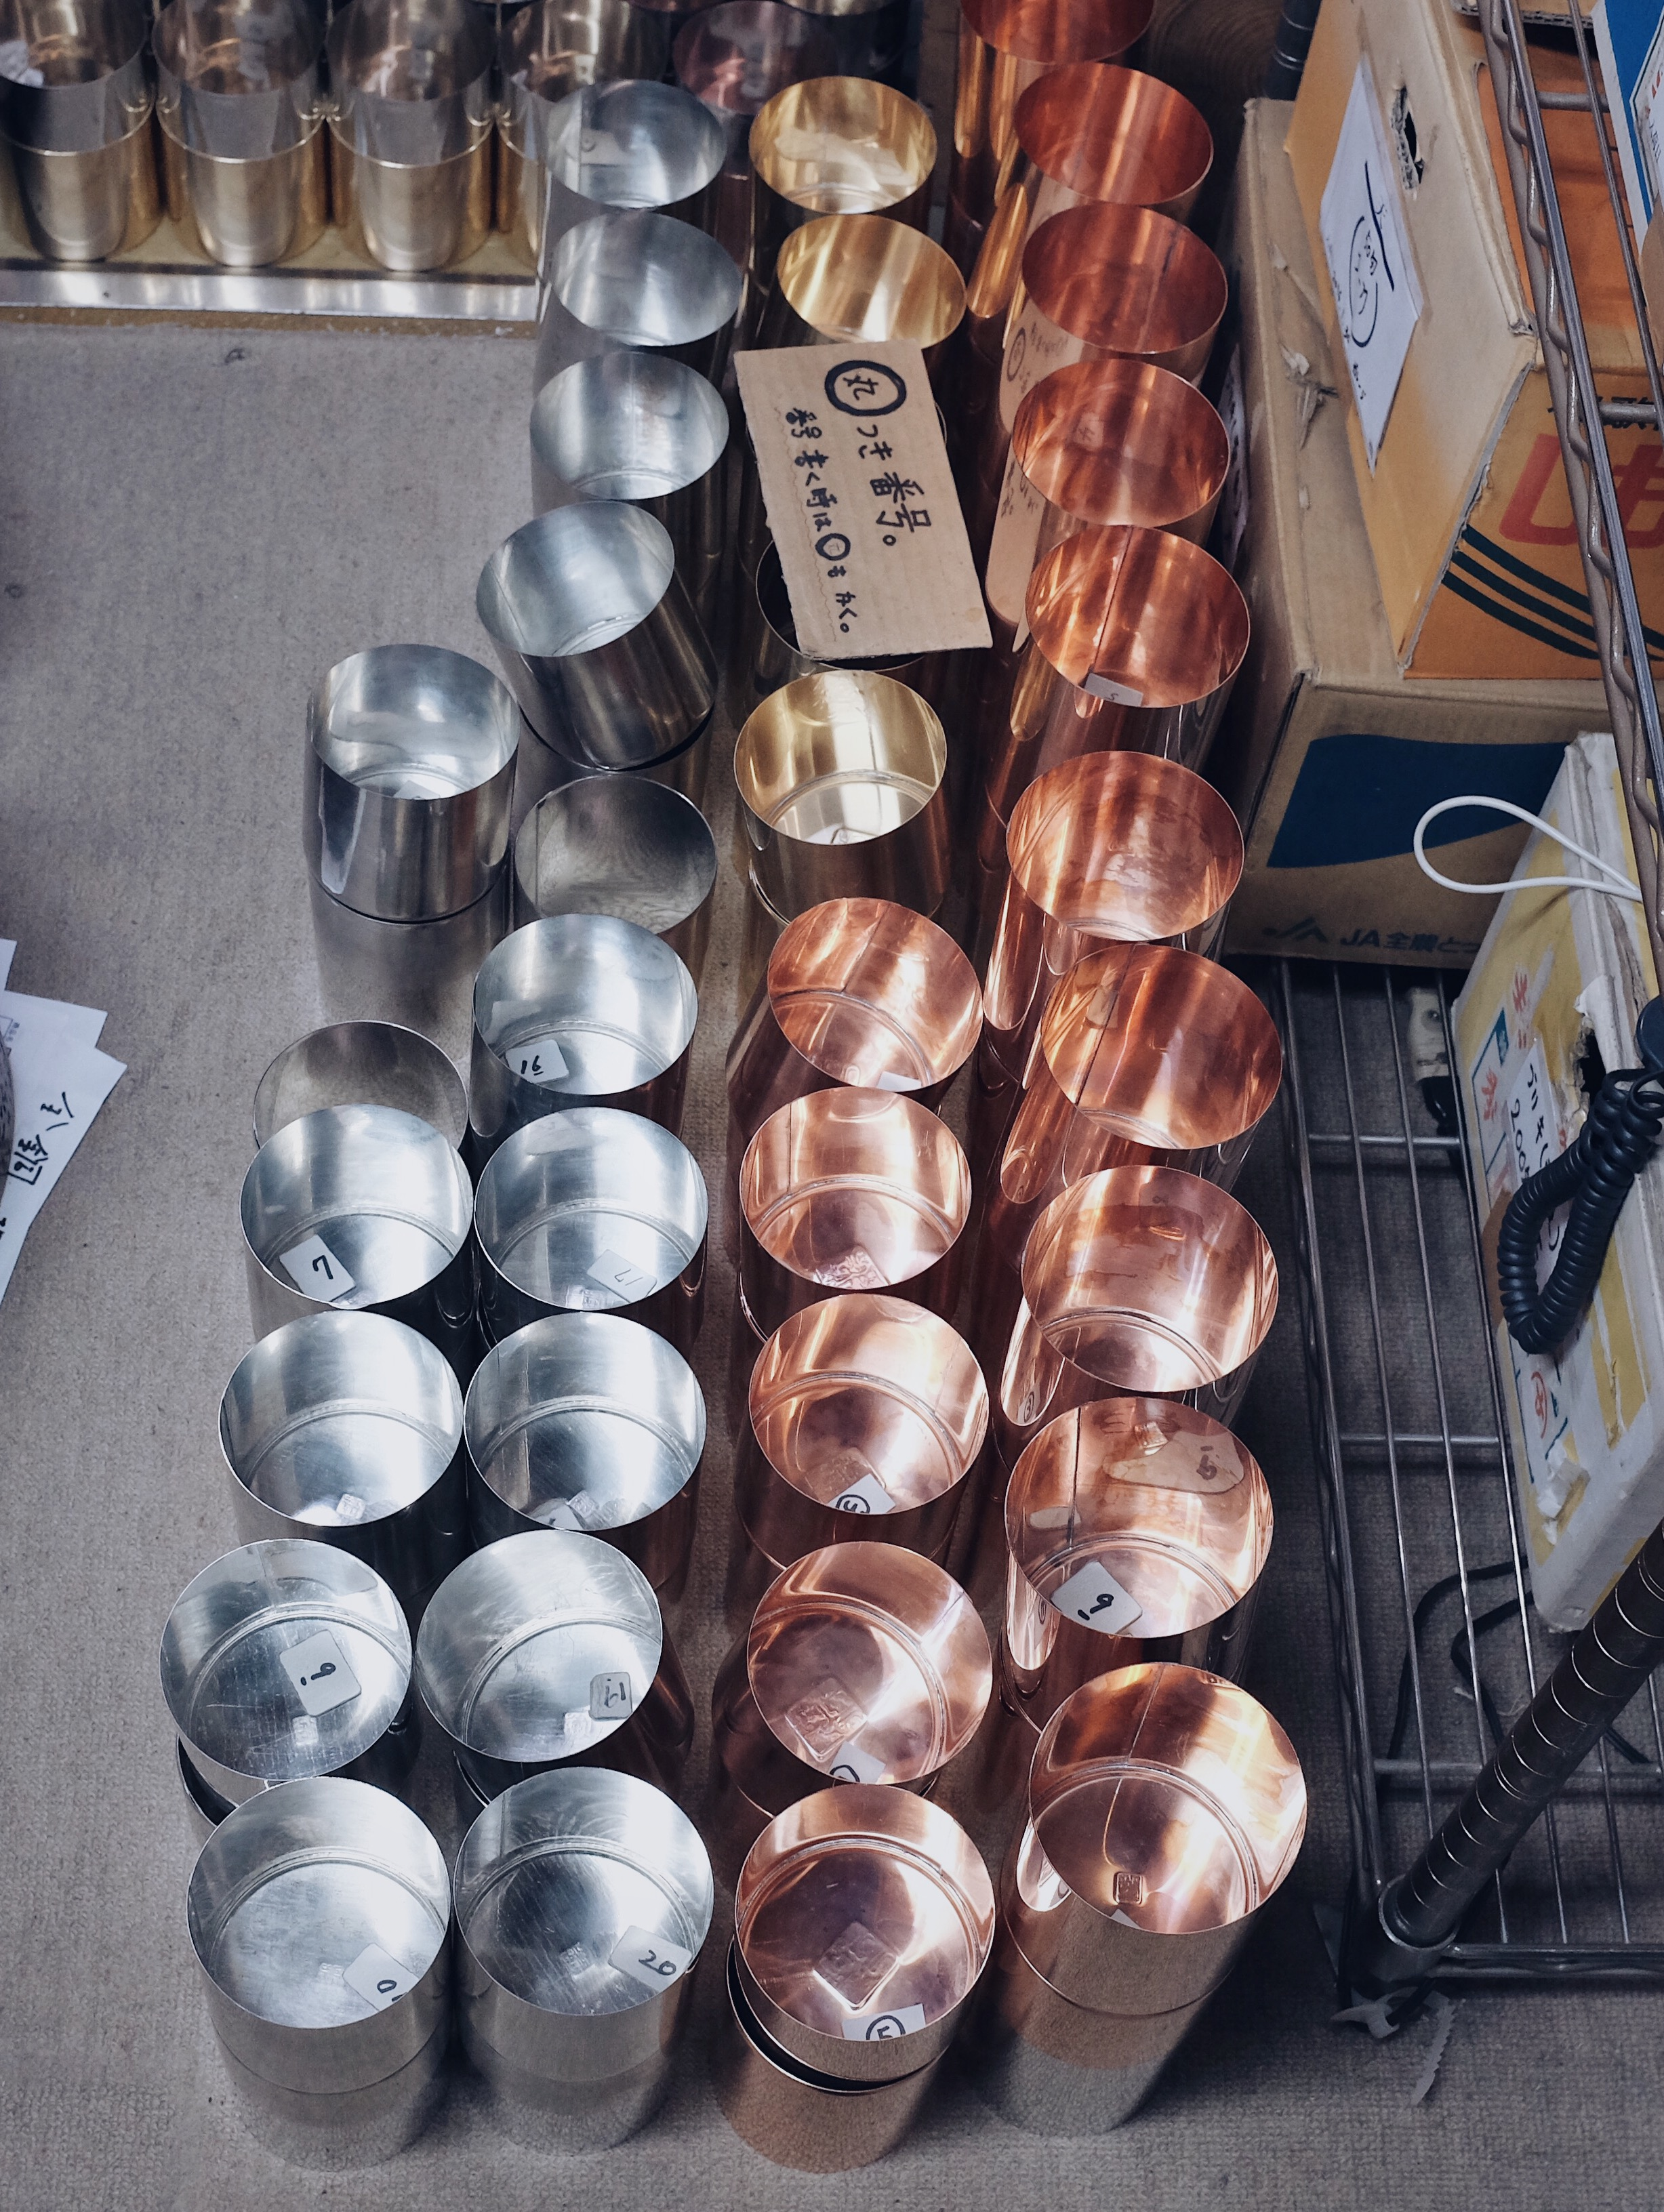 The outer wall made from brass or copper is lined with an internal tin wall. Its double walled design retains the flavour and quality of freshly picked tealeaves as well as coffee beans, herbs, and spices.